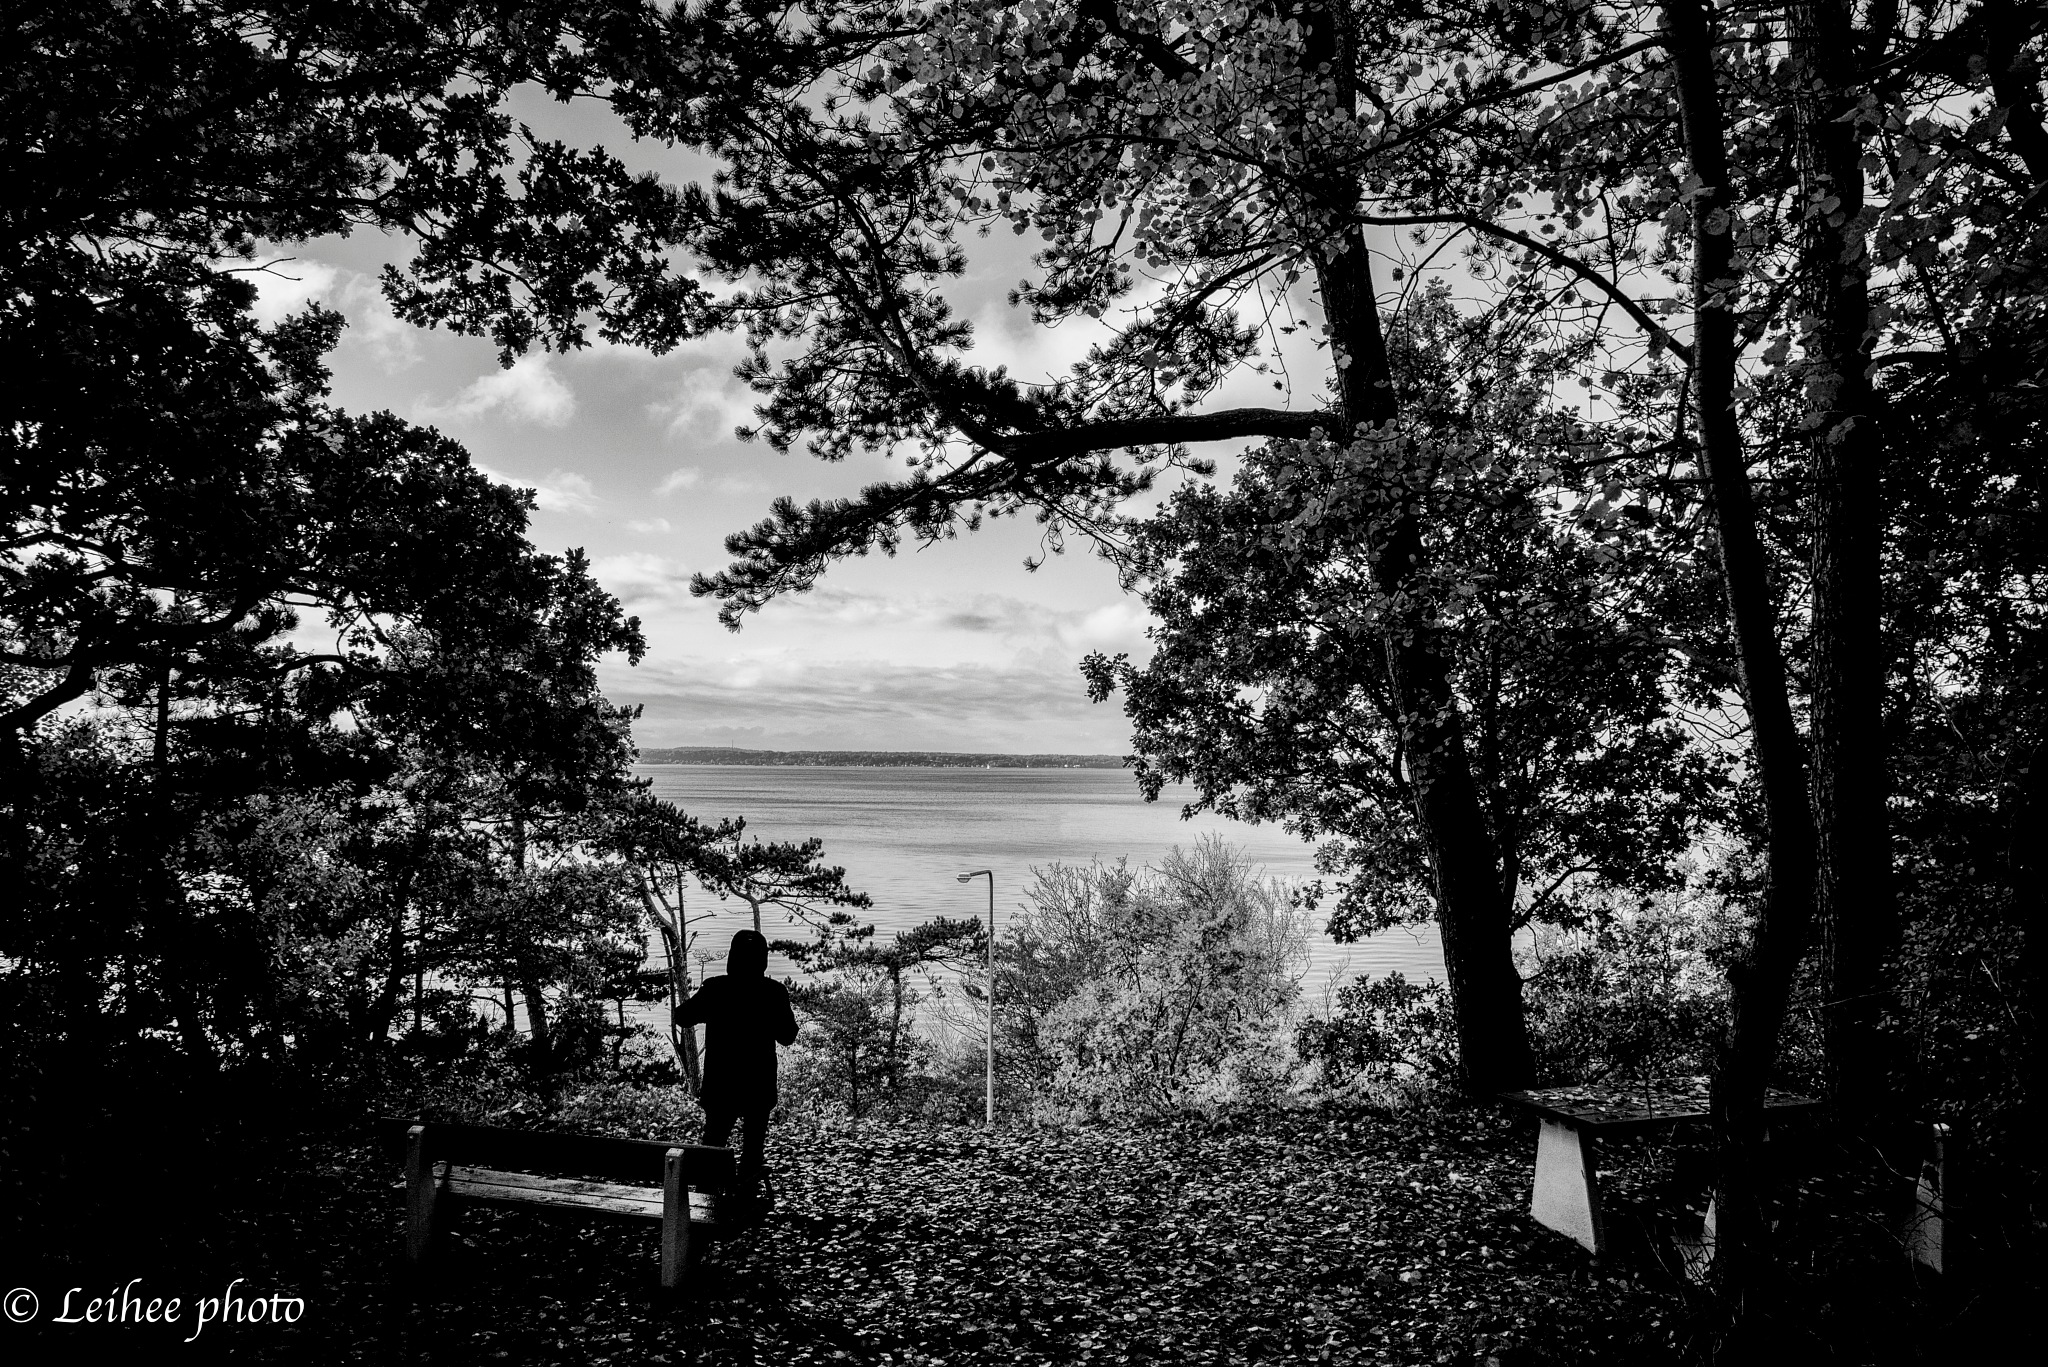 View by Leif Heering